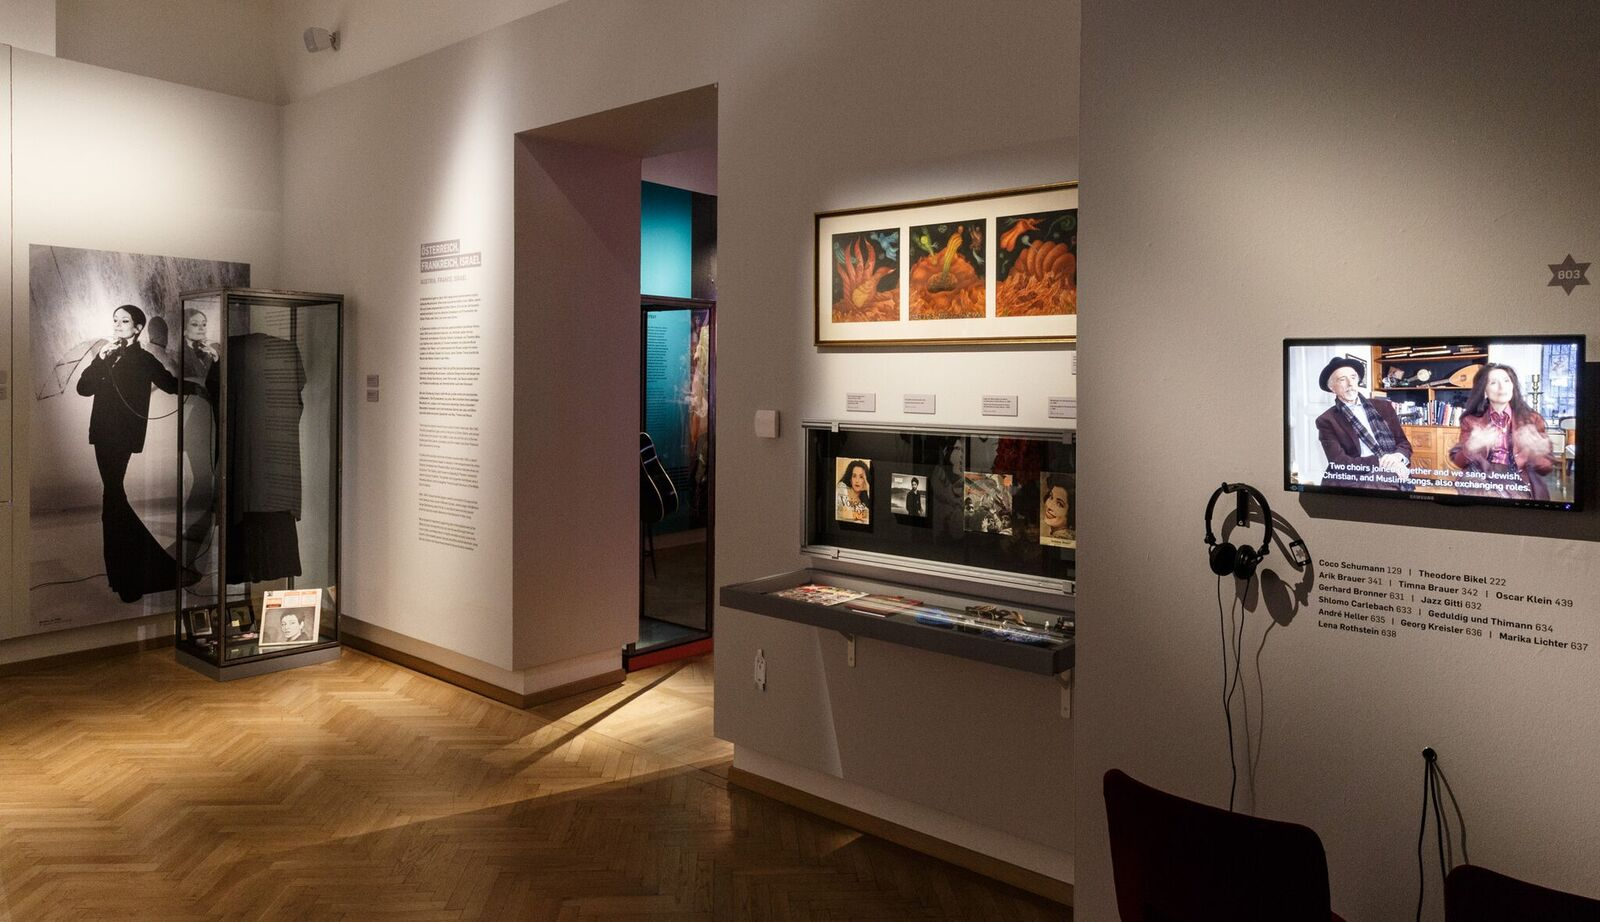 """Video screens and objects in the exhibition """"Stars of David."""" (Photo: Jüdisches Museum Wien/Stalzer & Partner GmbH)"""